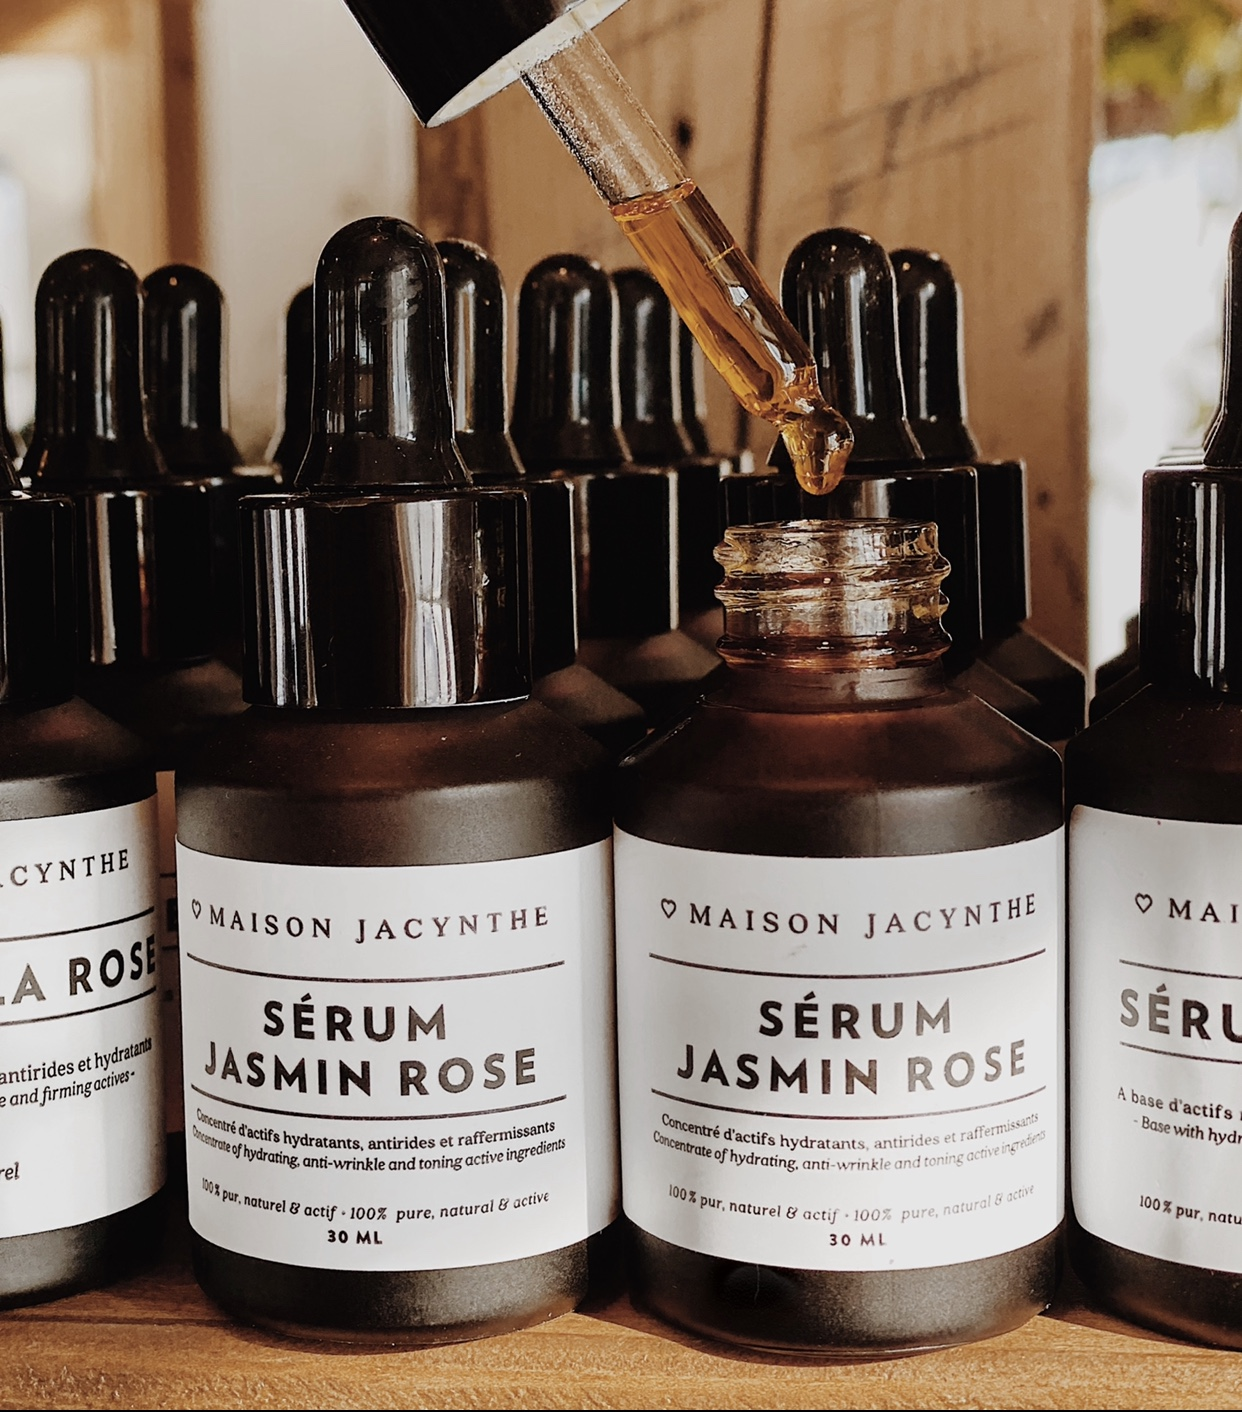 Sérum Jasmin Rose